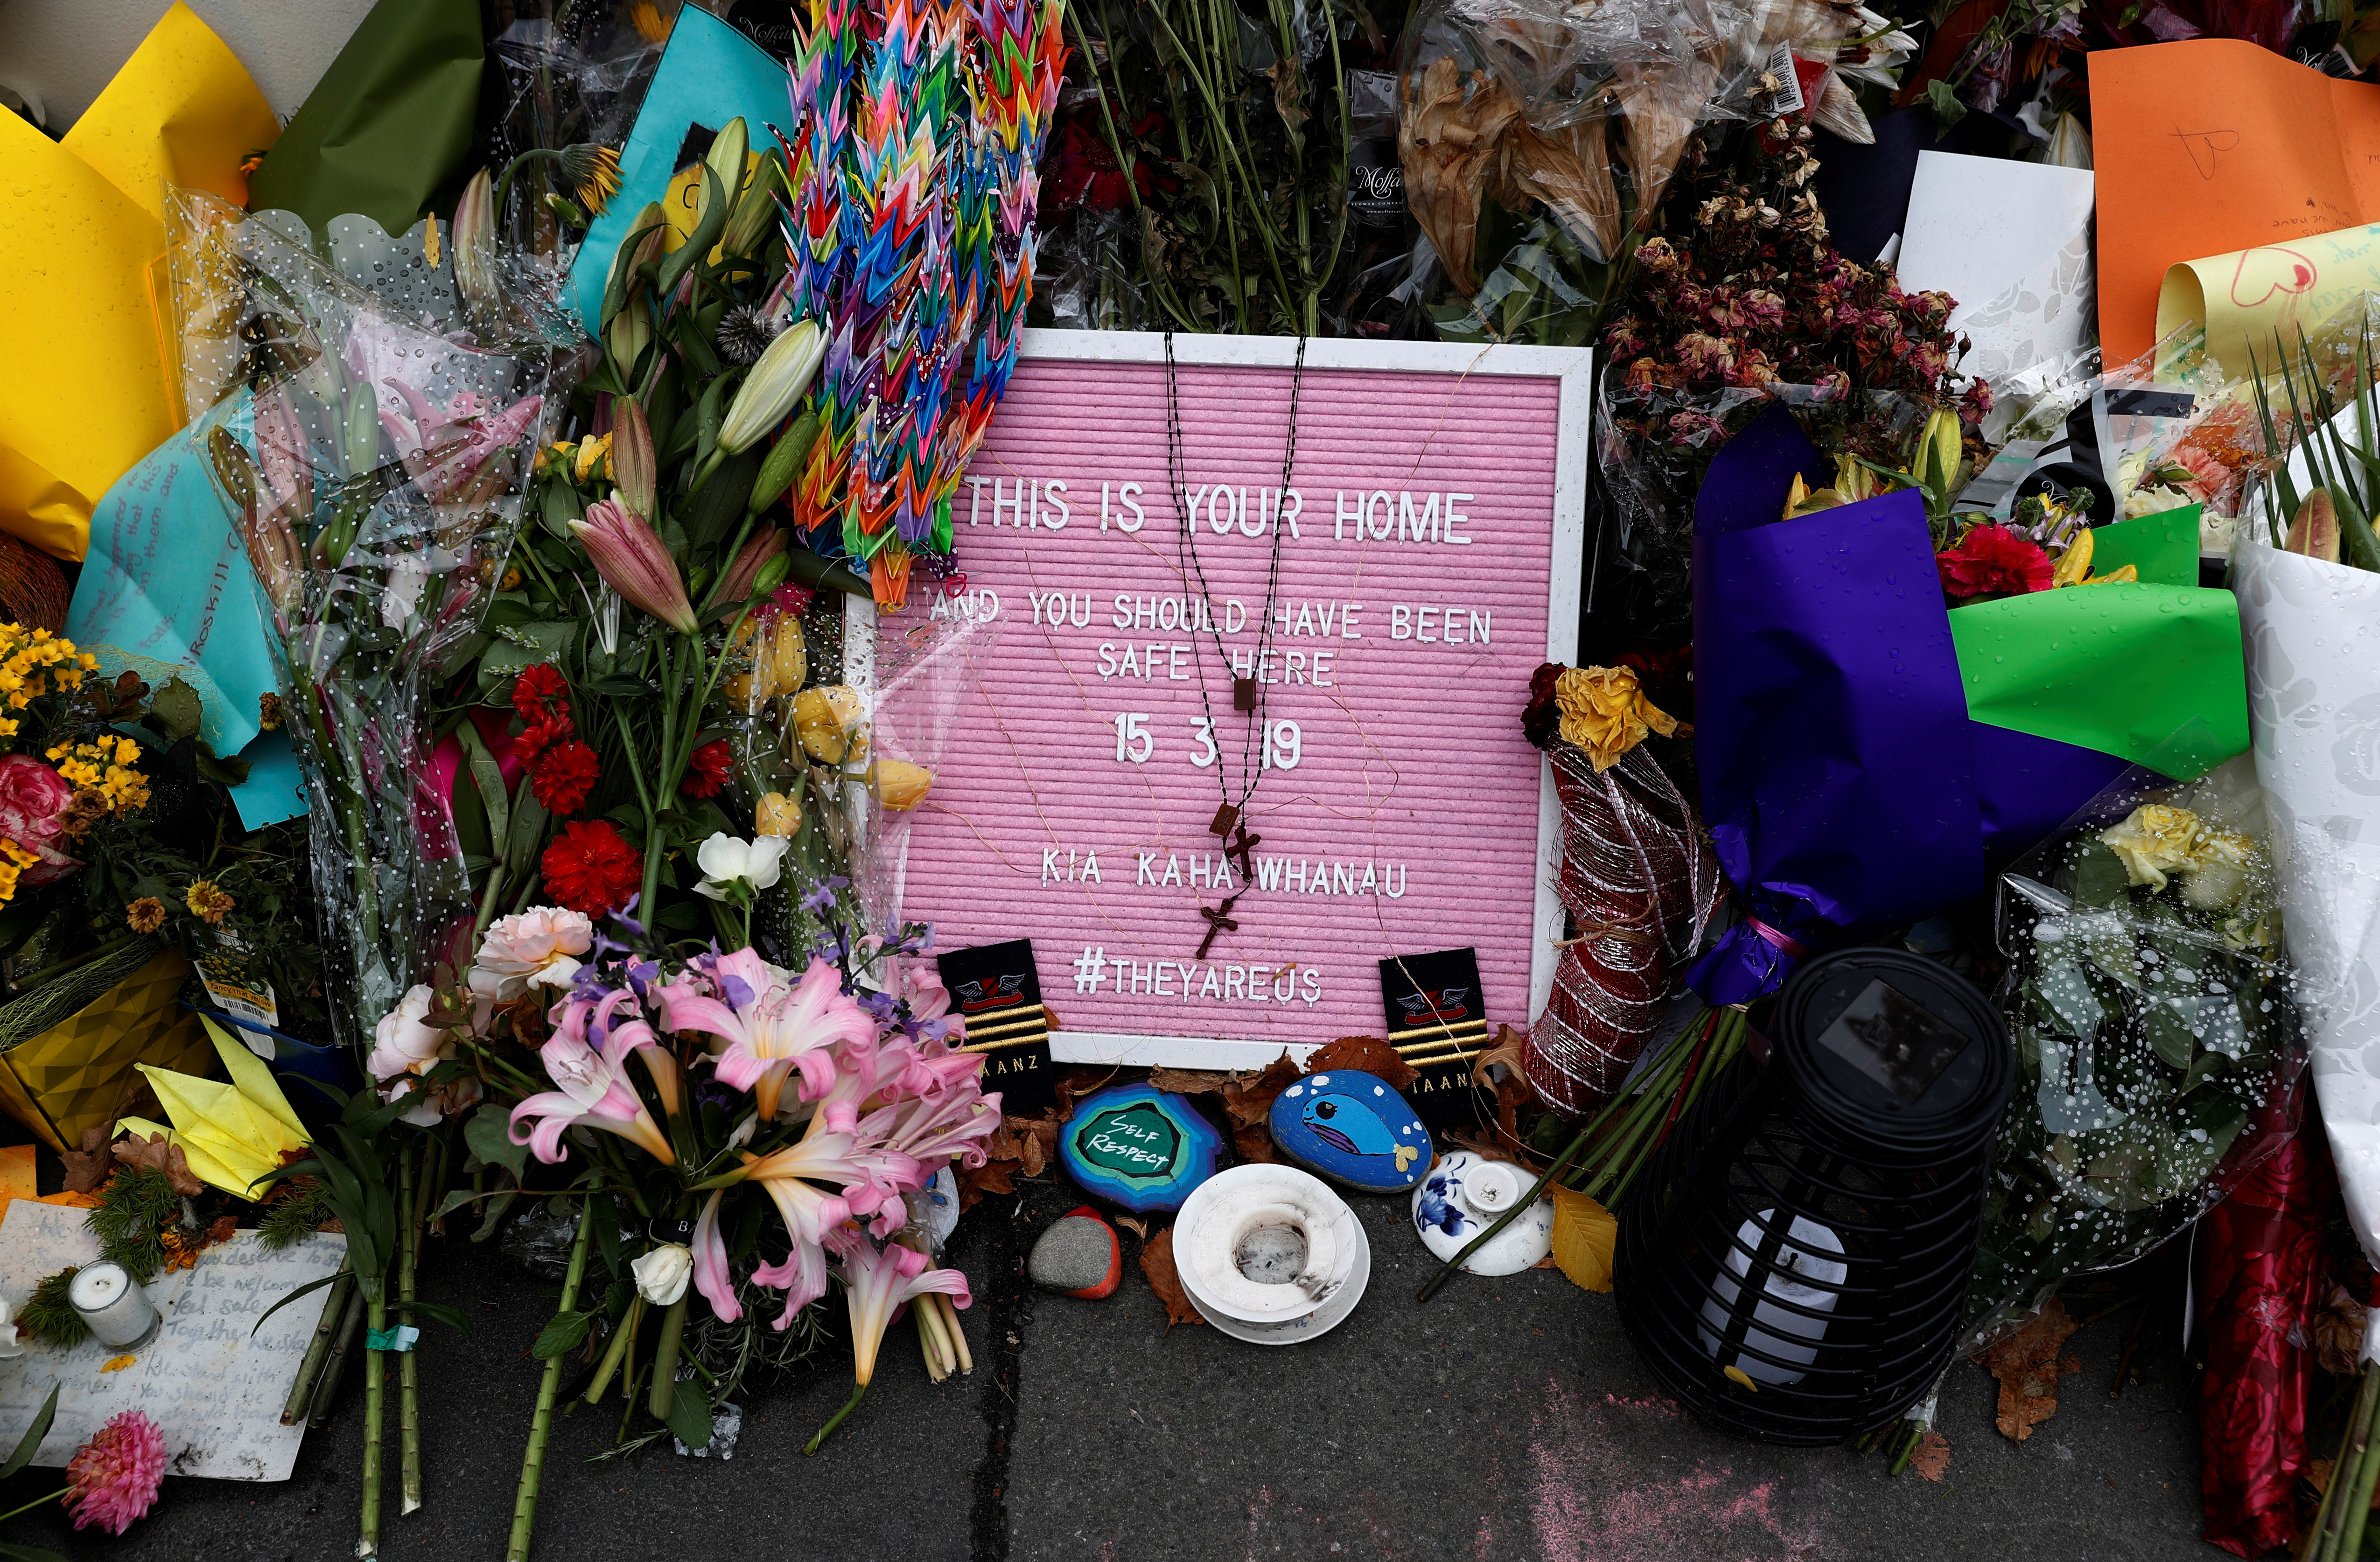 A flower tribute is seen outside Al Noor mosque where more than 40 people were killed by a suspected white supremacist during Friday prayers on March 15, in Christchurch, New Zealand March 27, 2019.